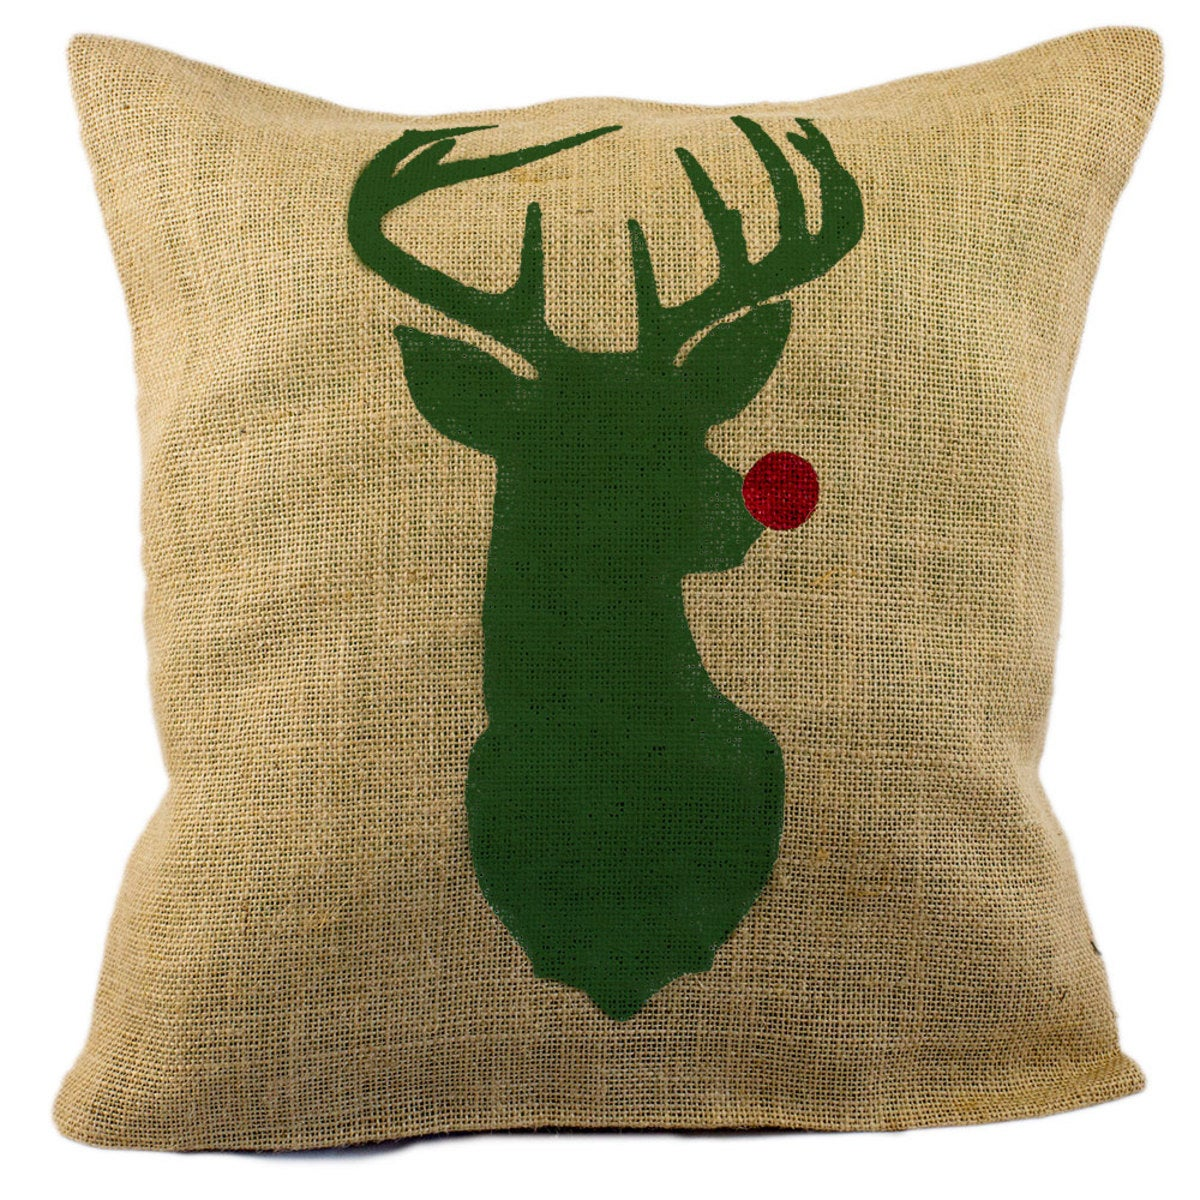 Red Nosed Reindeer Burlap Decorative Pillow Cover - Green